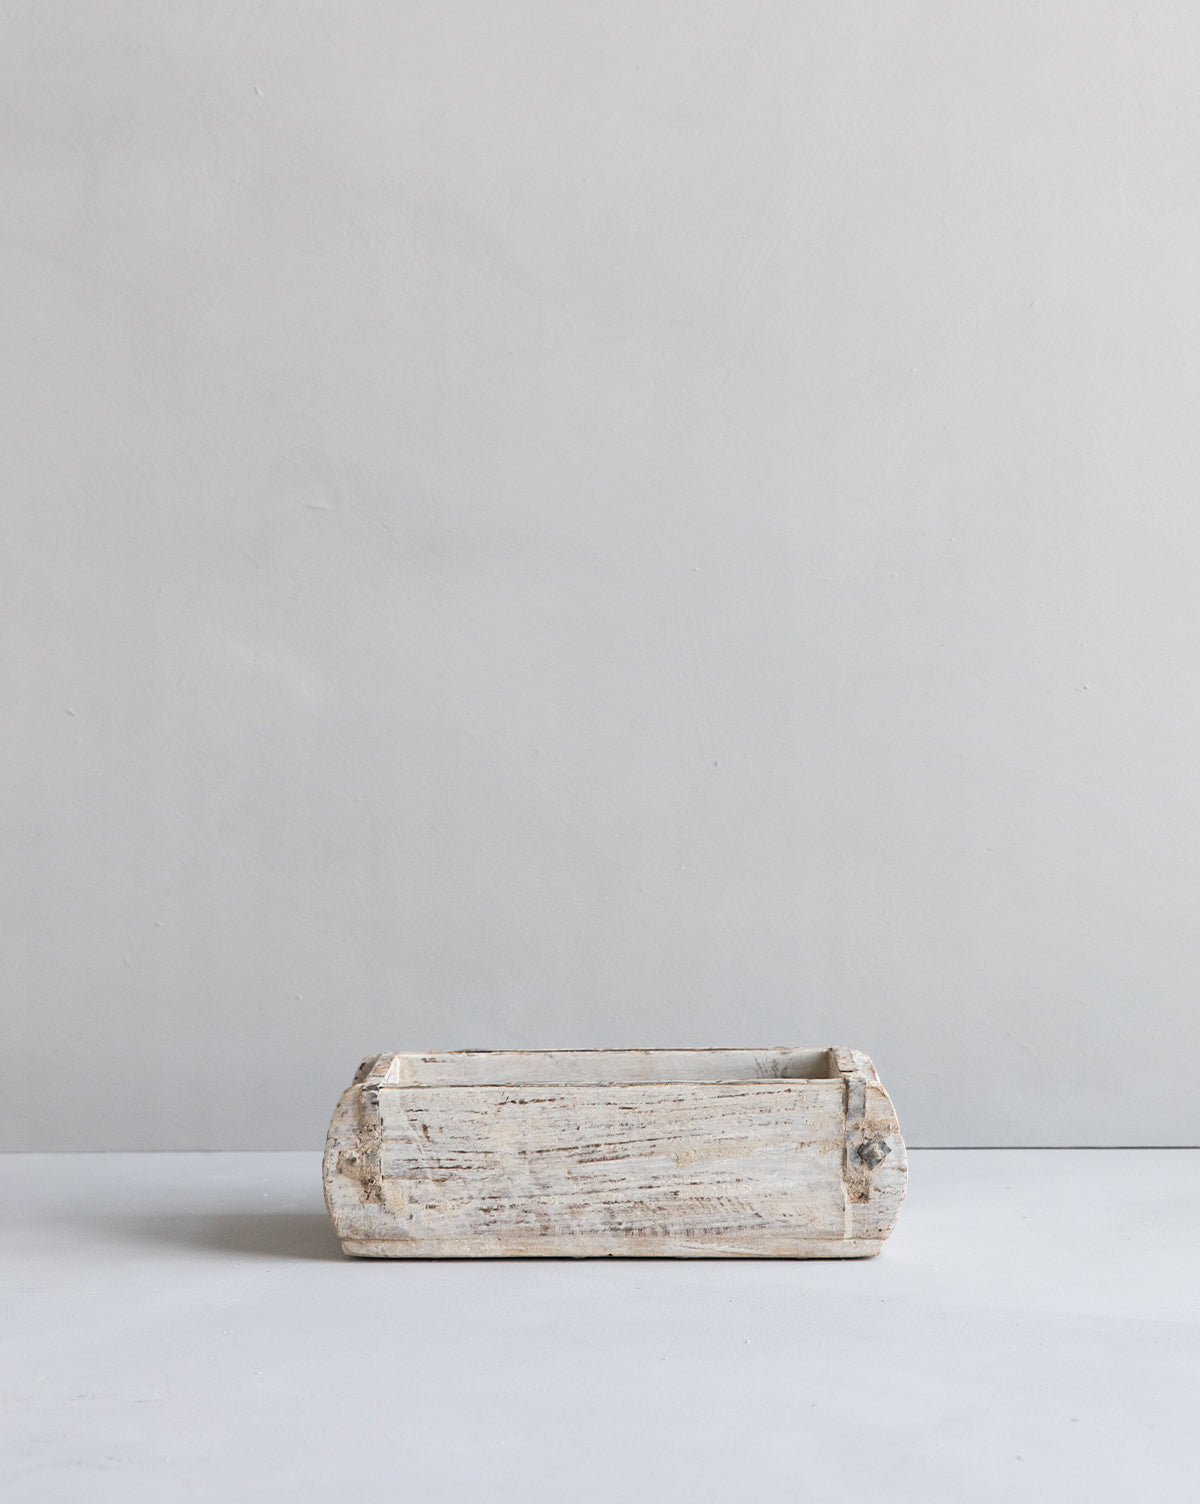 Weathered Wood Brick Mold